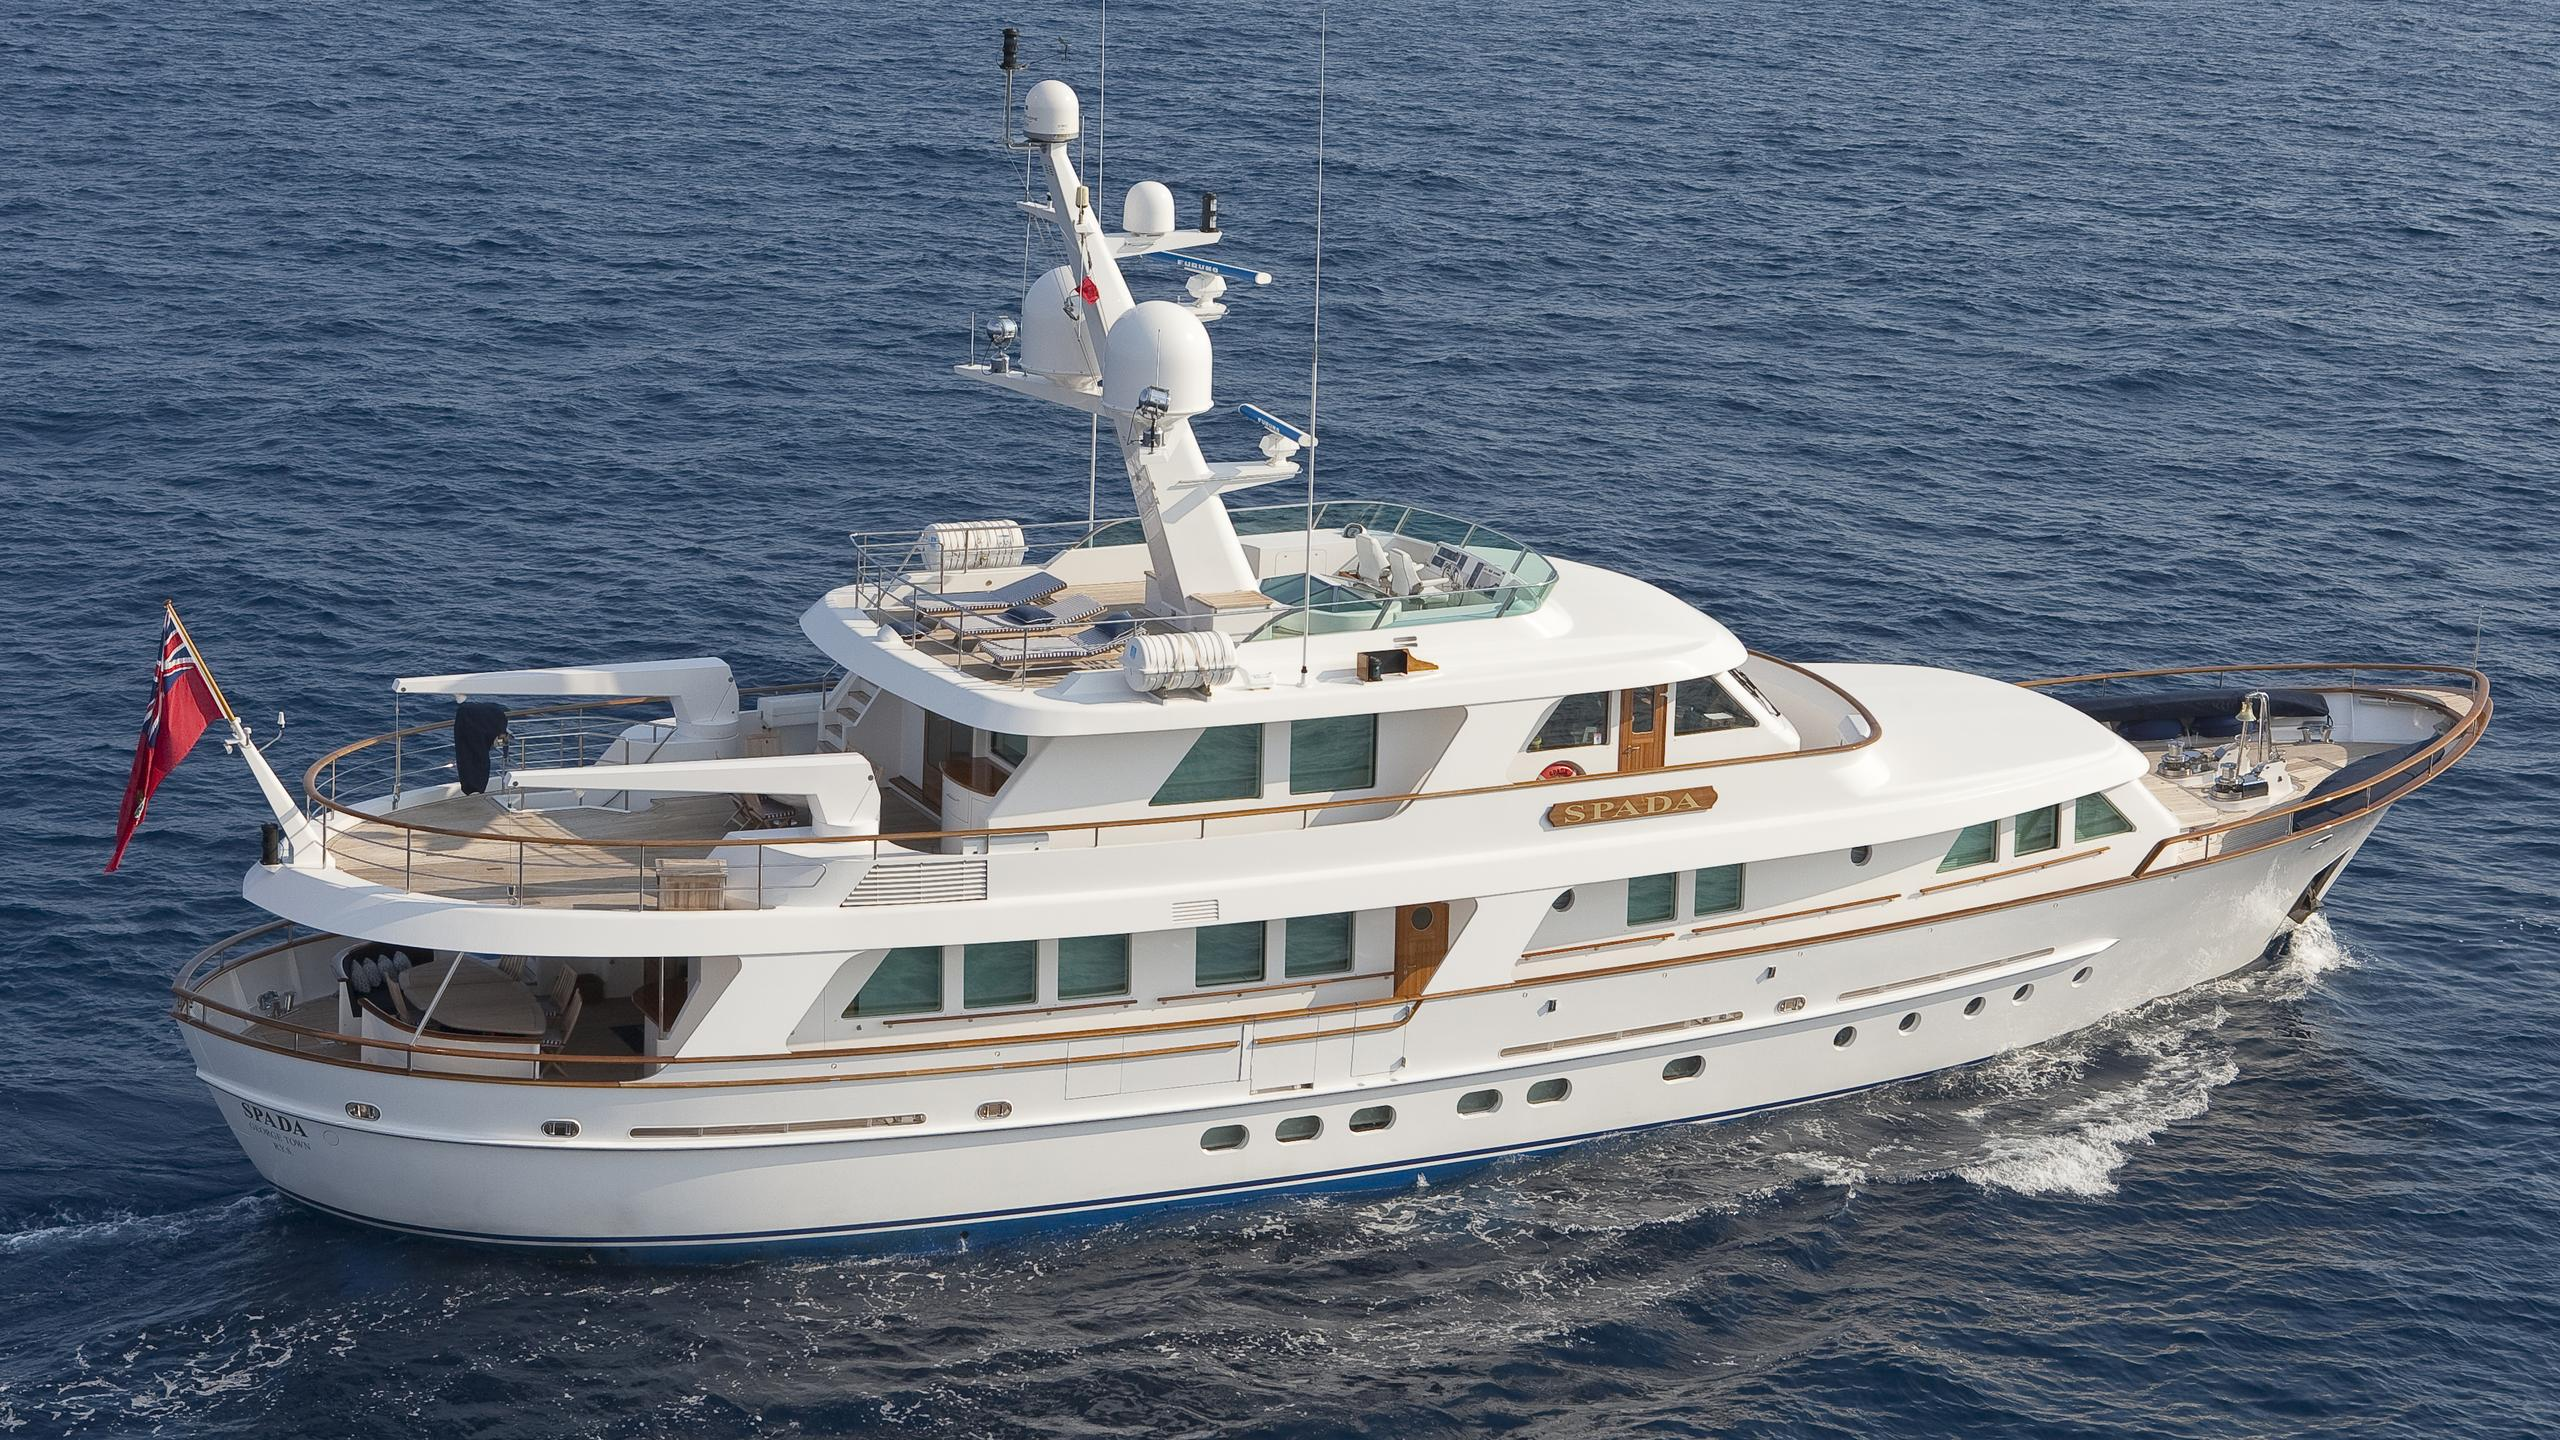 spada-yacht-at-sea